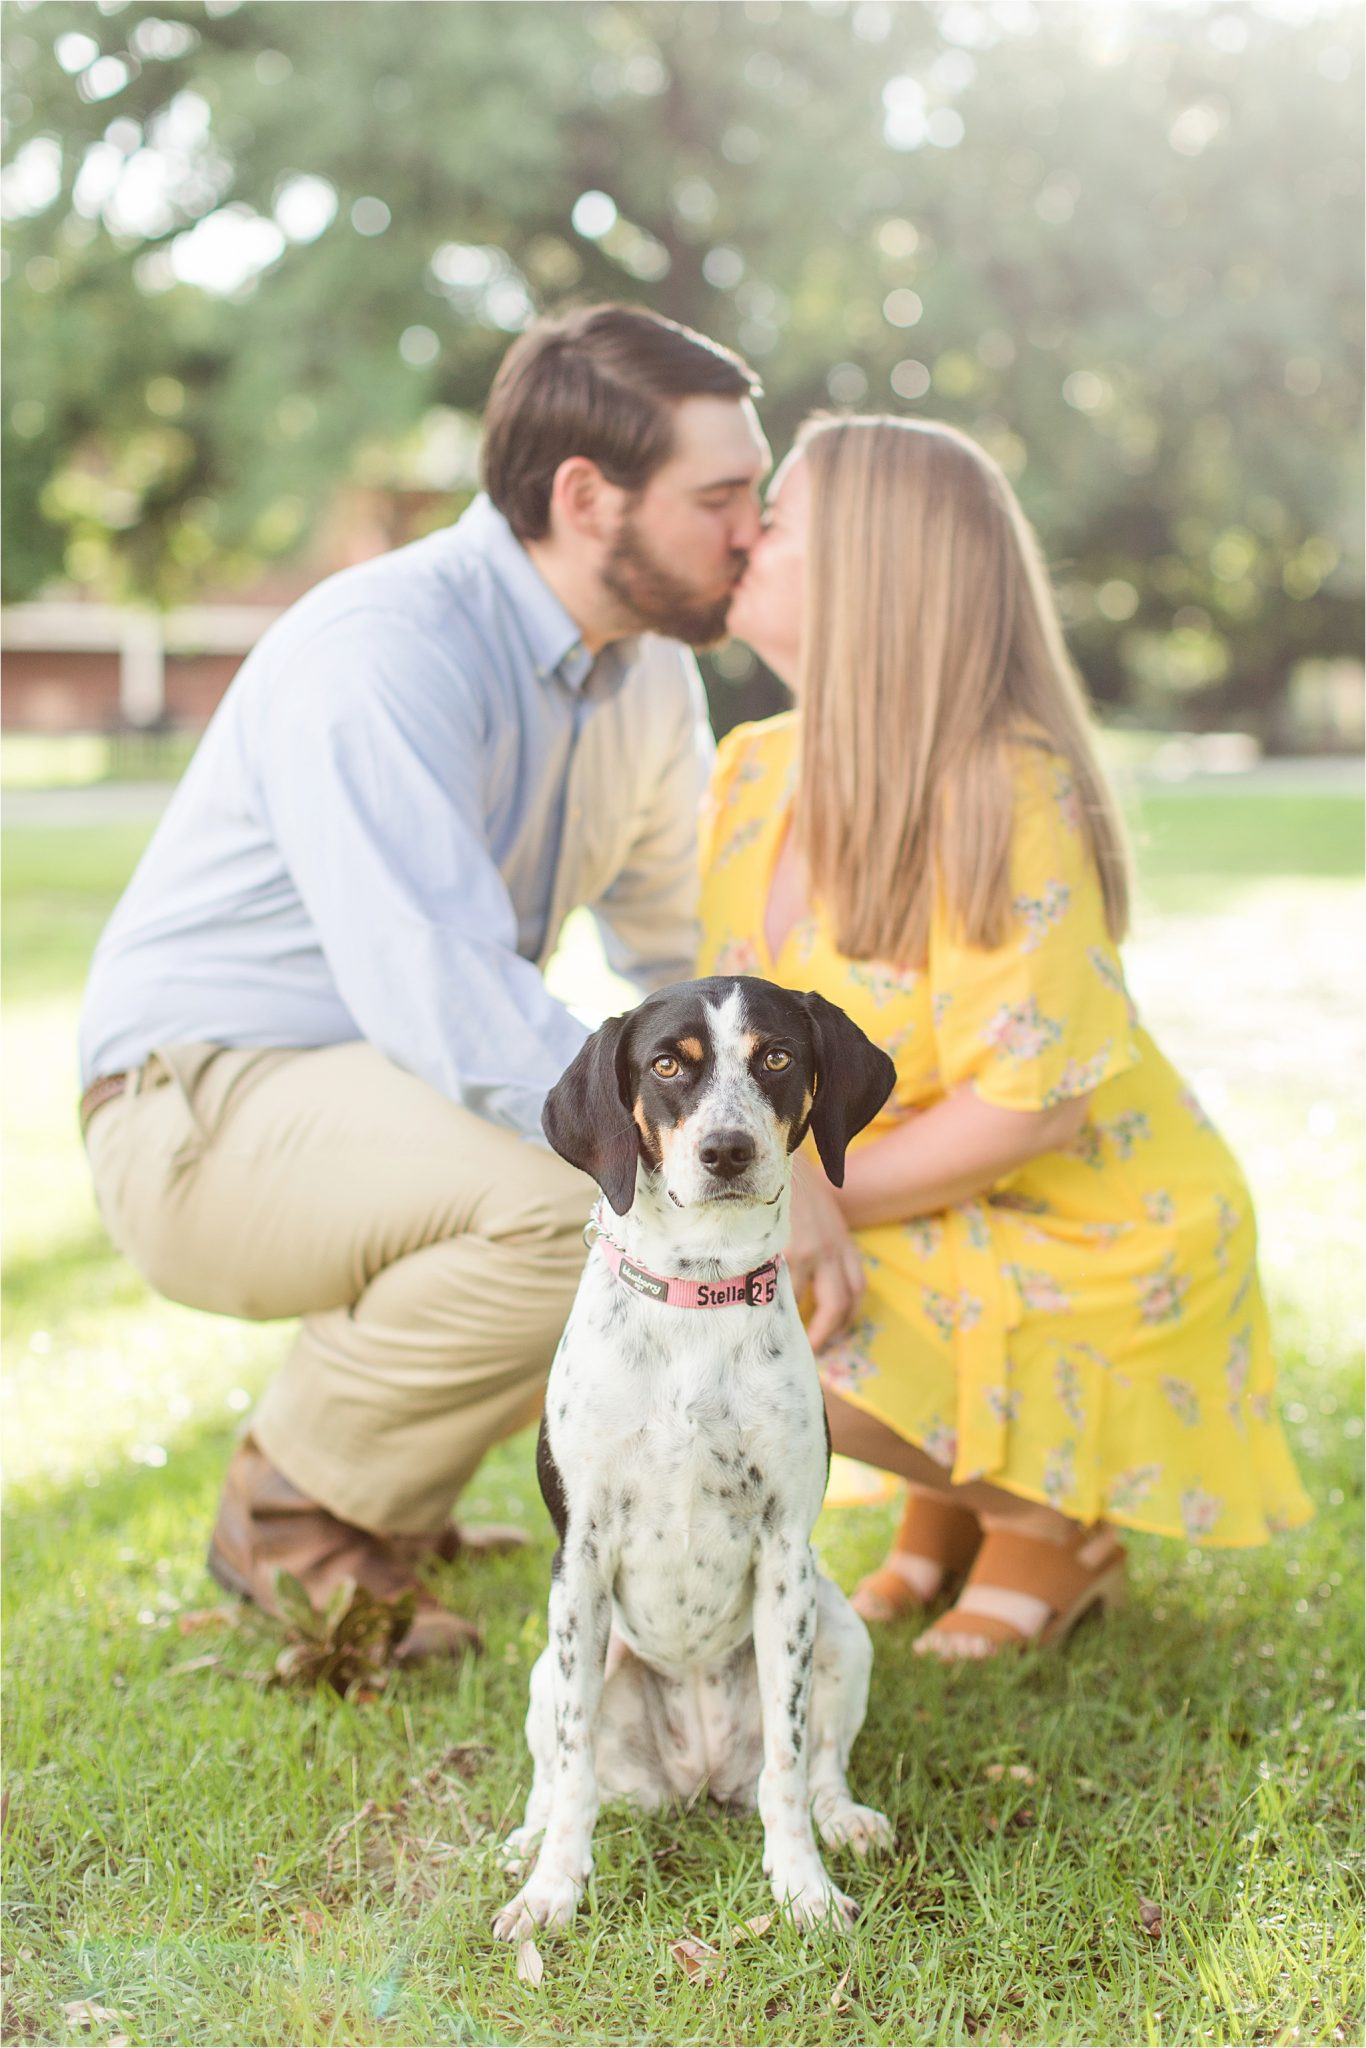 St.Joseph Chapel, Mobile Alabama Photographer, Spring Hill College, Catholic Church Engagement Shoot, Summer Engagement Shoot, Engagement Shoot Inspiration, Engagement Shoot With Pet